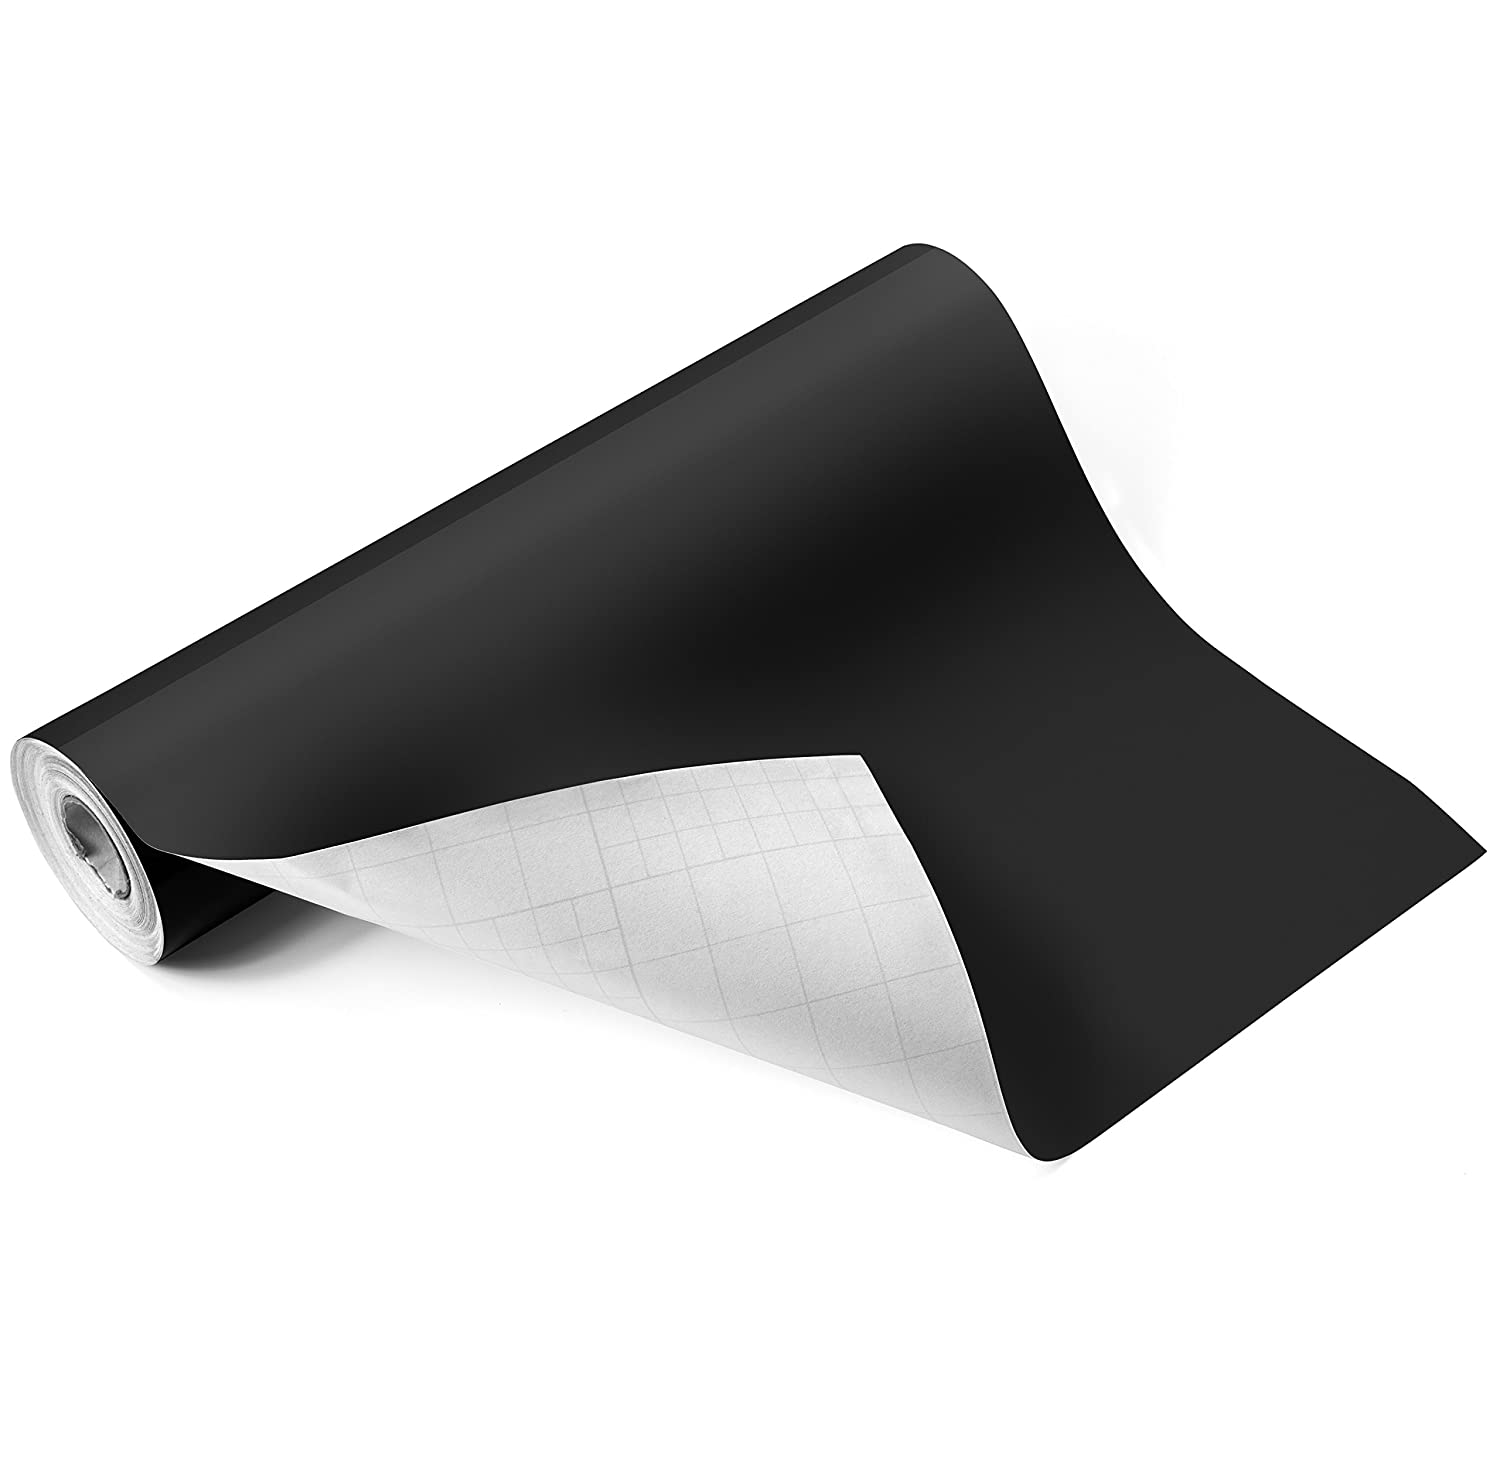 "Adhesive Glossy Black Vinyl Roll – HUGE Glossy Adhesive Permanent Black Vinyl Rolls – 12""x40FT Black Vinyl Sheets are The BEST Vynil – EZ Craft USA Black Vinyl Wrap Works with Cricut and Other Cutters Angelo Rosado"